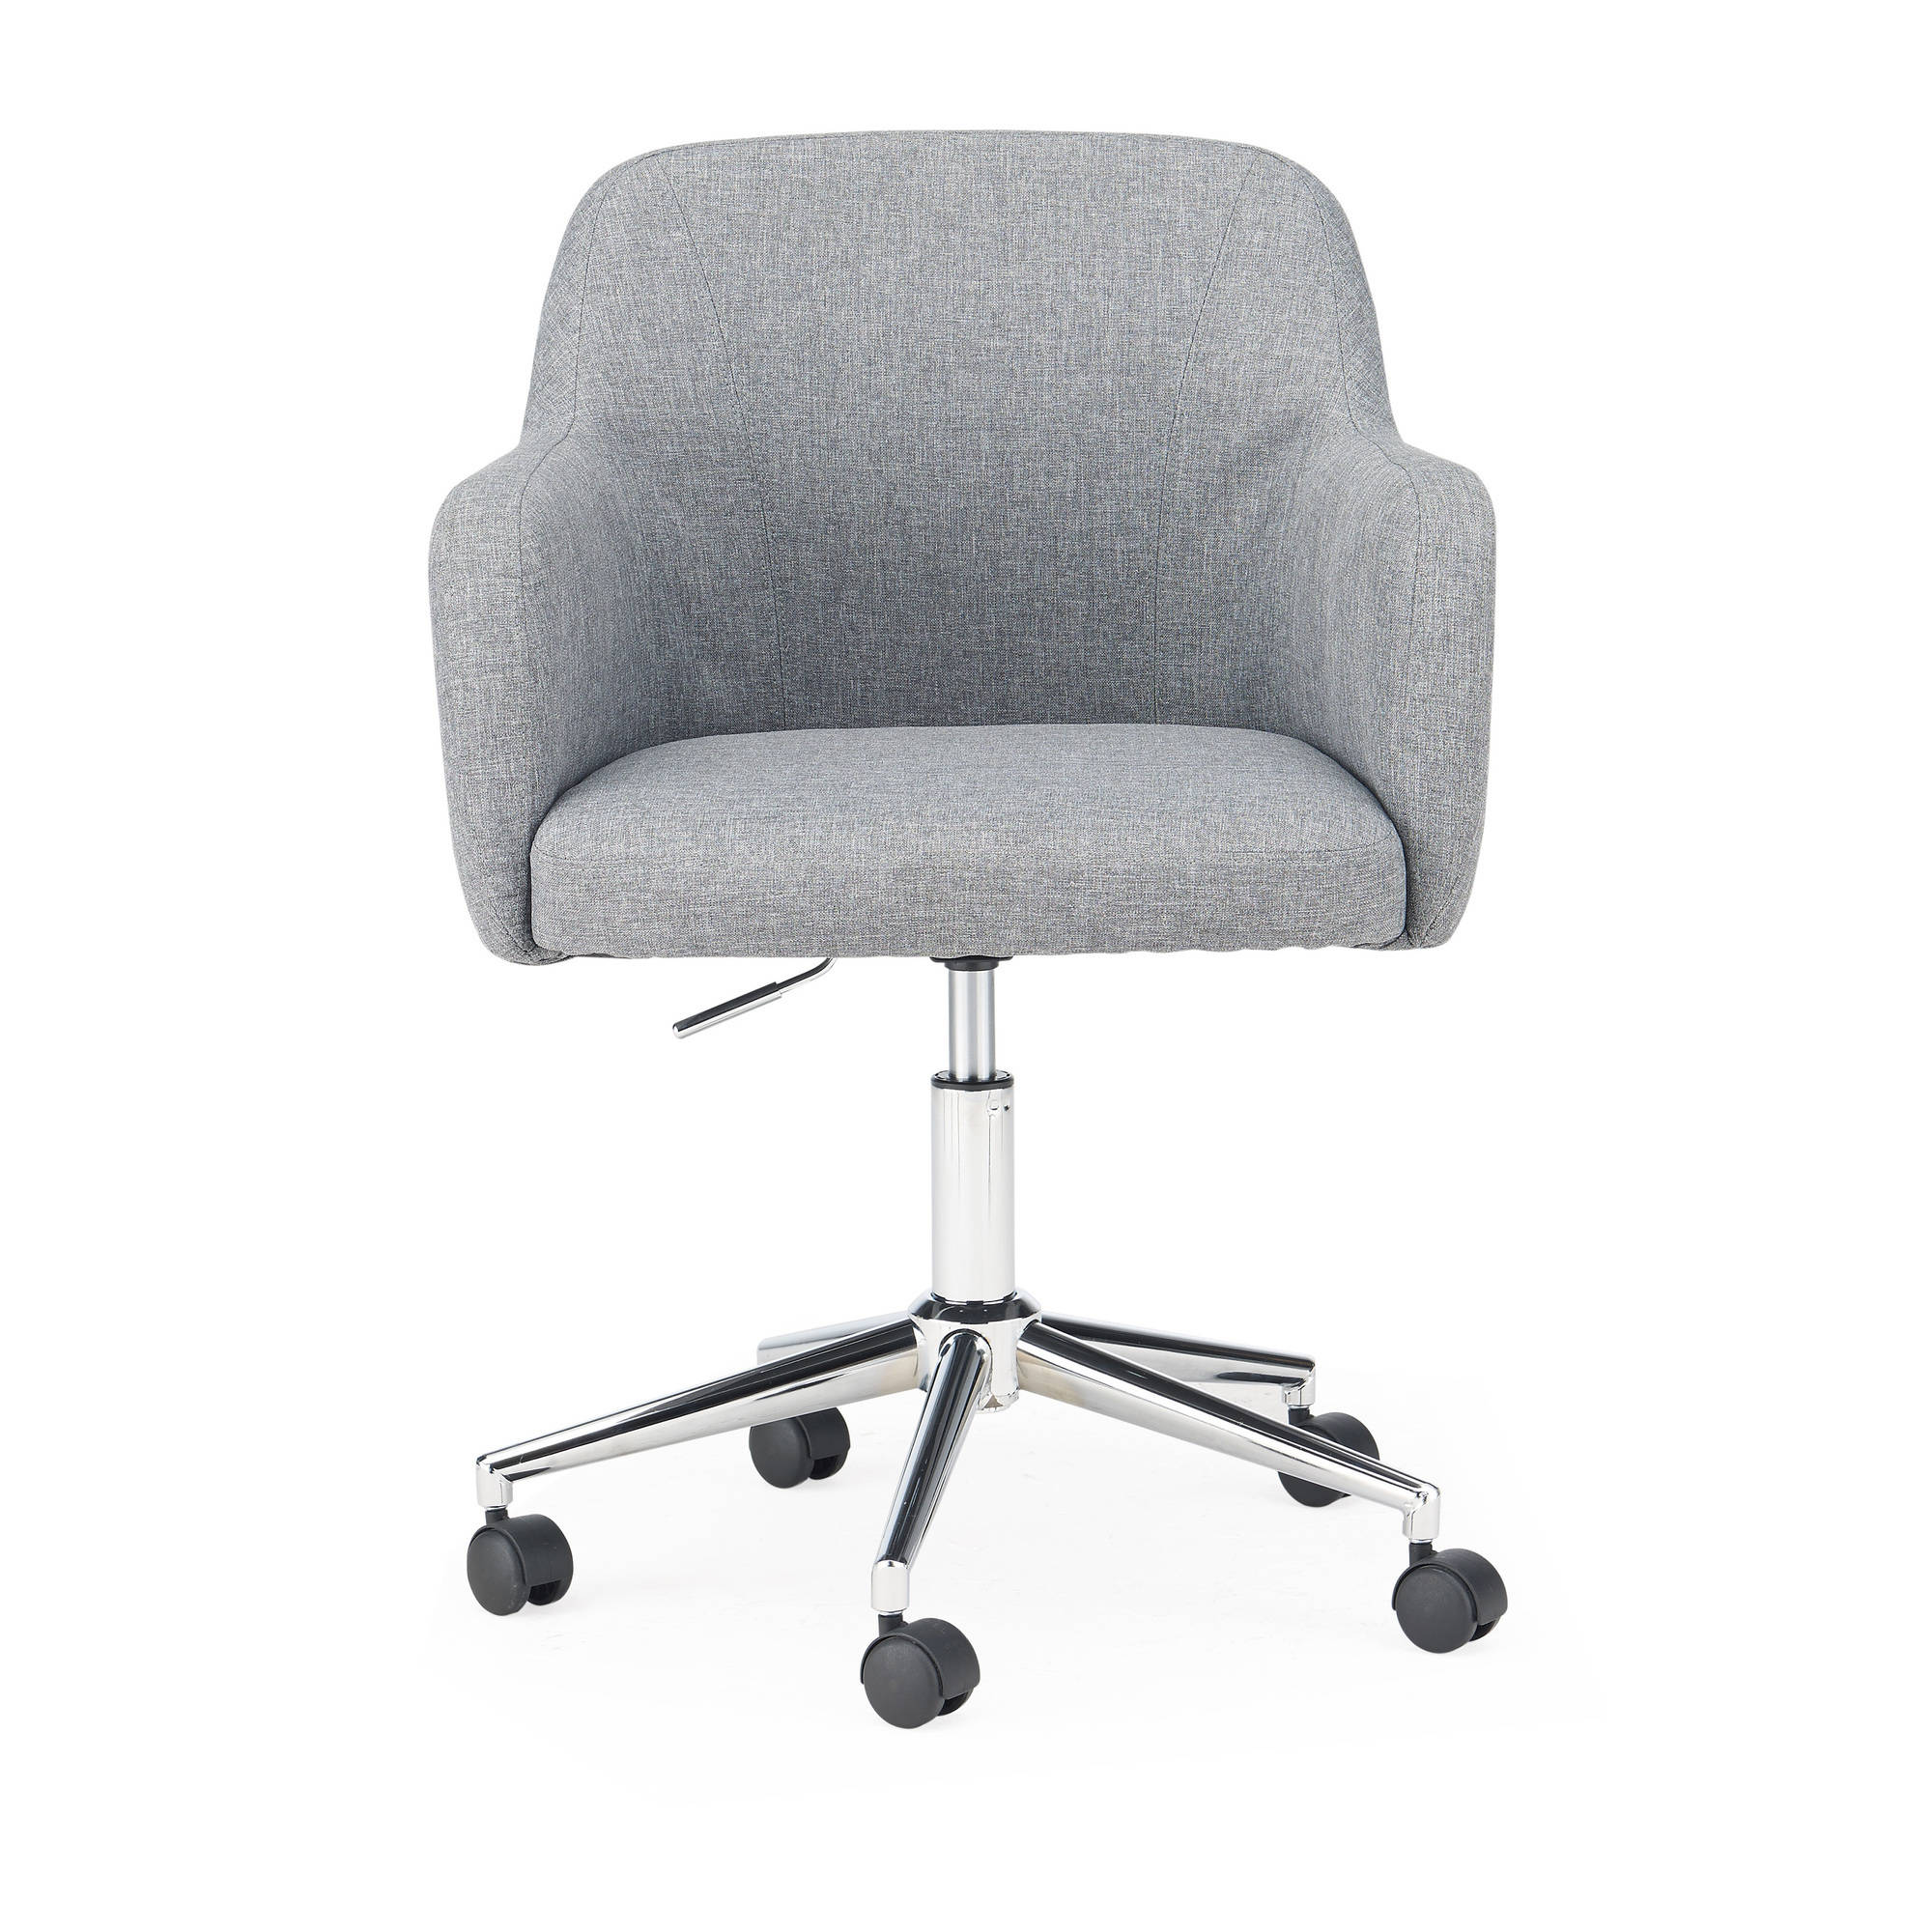 Mainstays low back office chair multiple colors walmart ketotrimfo ImagesSilver Office Chair Images   Home Ideas For your Home. Silver Office Chair. Home Design Ideas